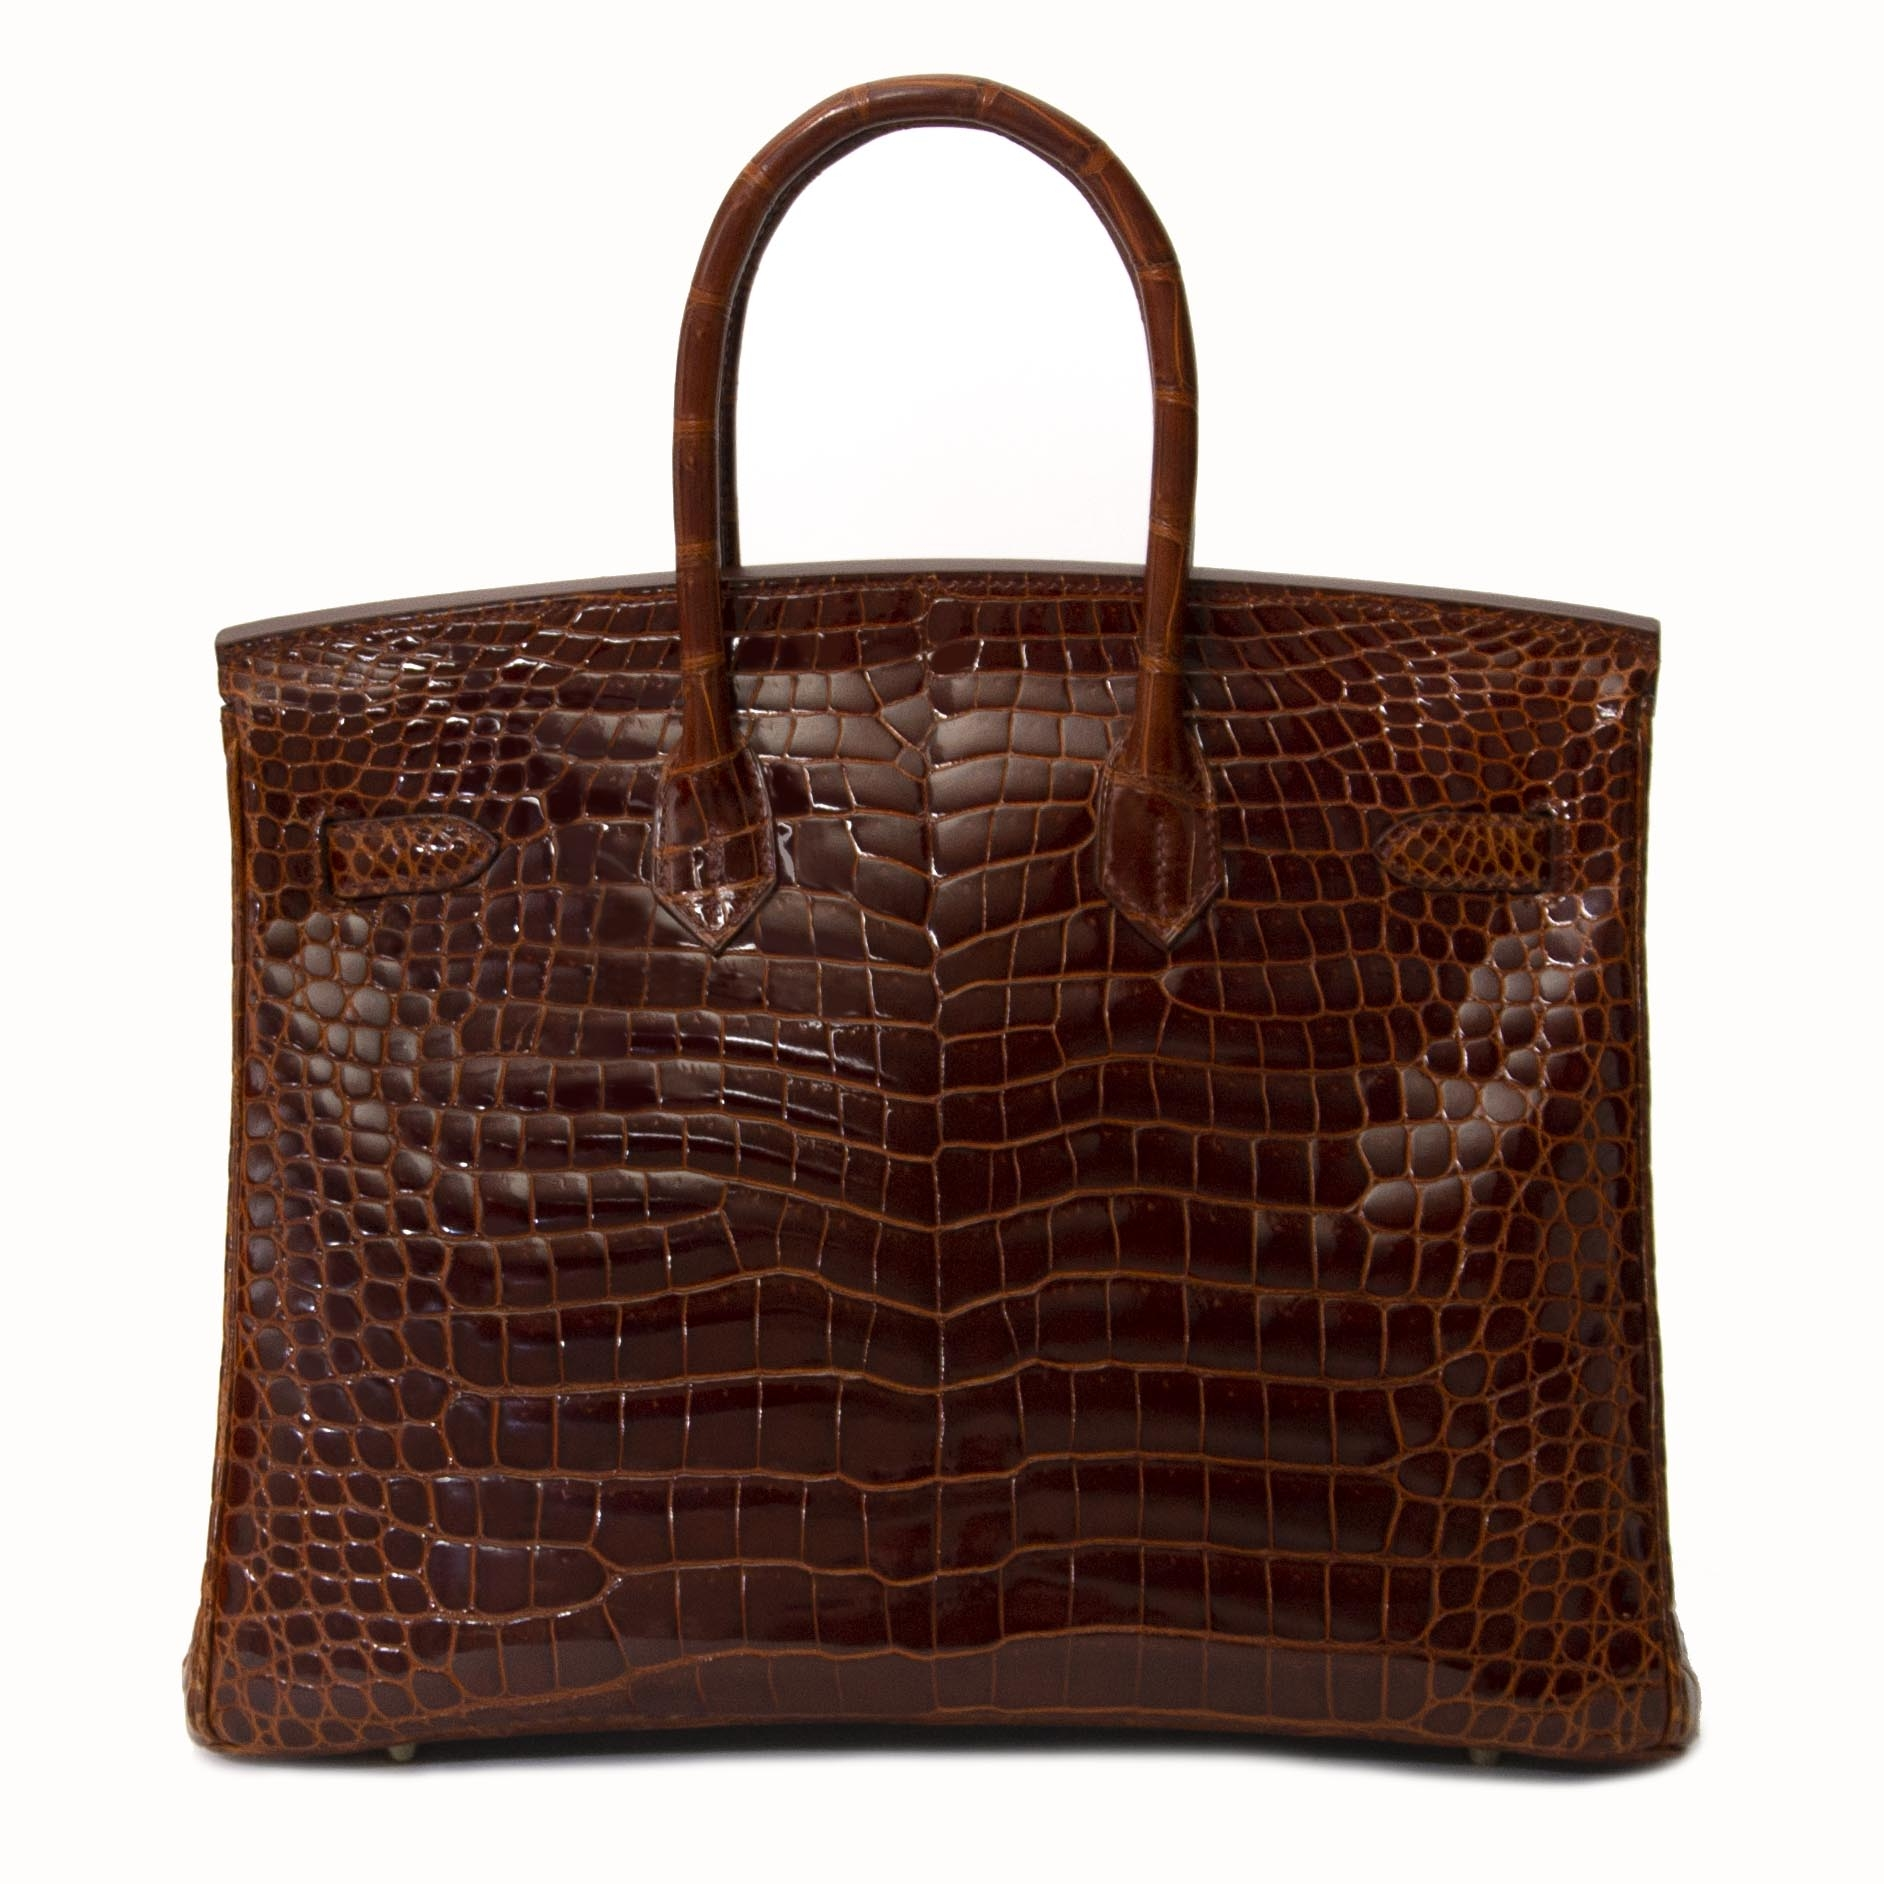 edae730894e ... No waiting list shipping worldwide best price best value Hermès Birkin  35 Crocodile Porosus Havane GHW